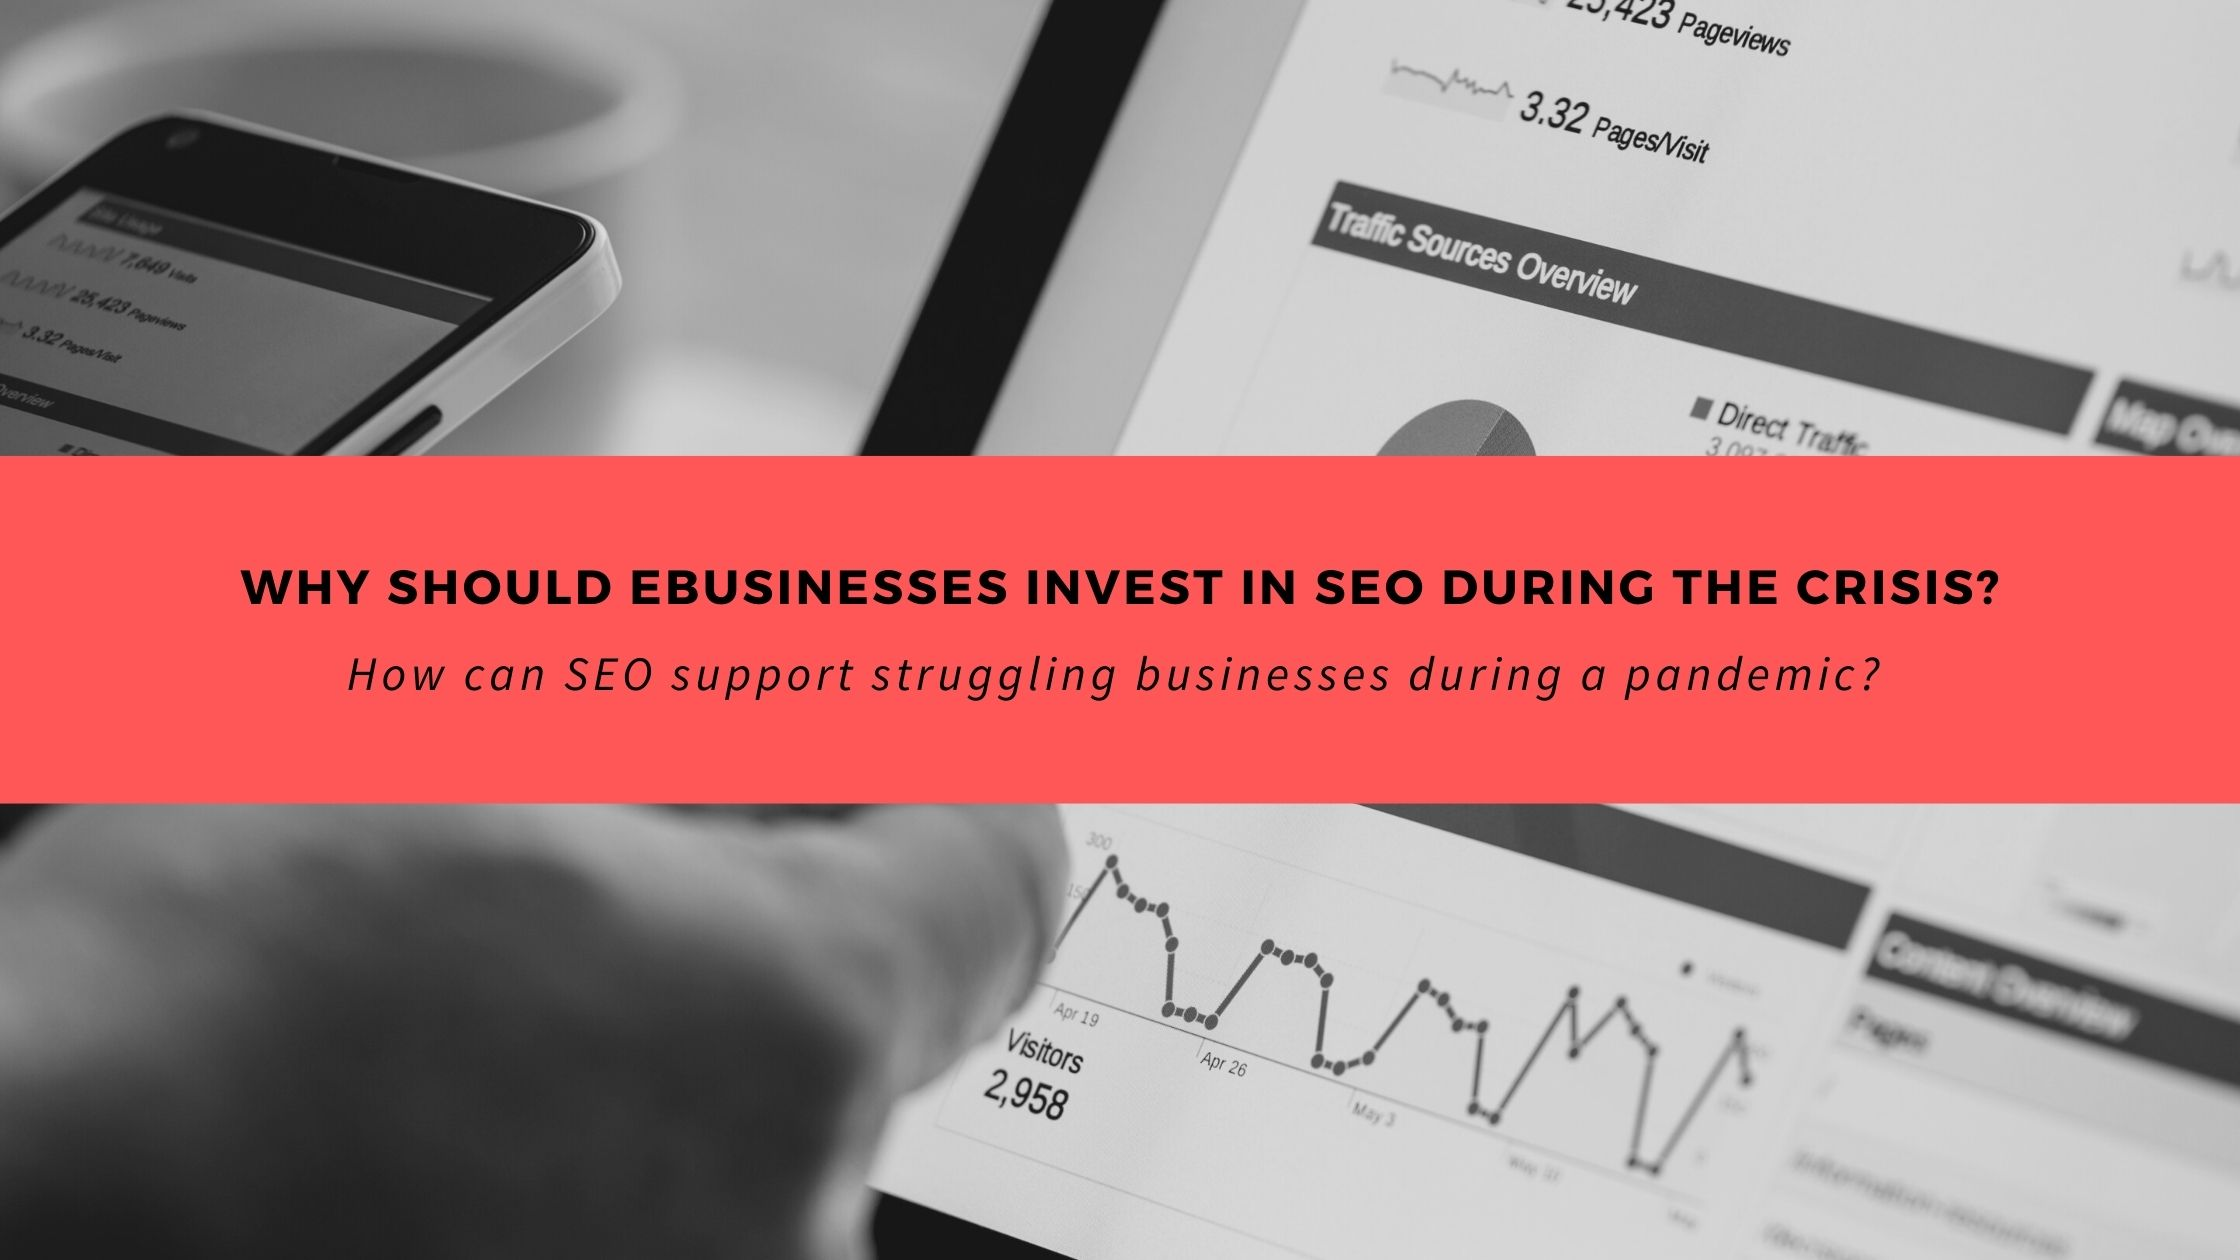 Best-marketing-strategies-for-ebusinesses-during-pandemic